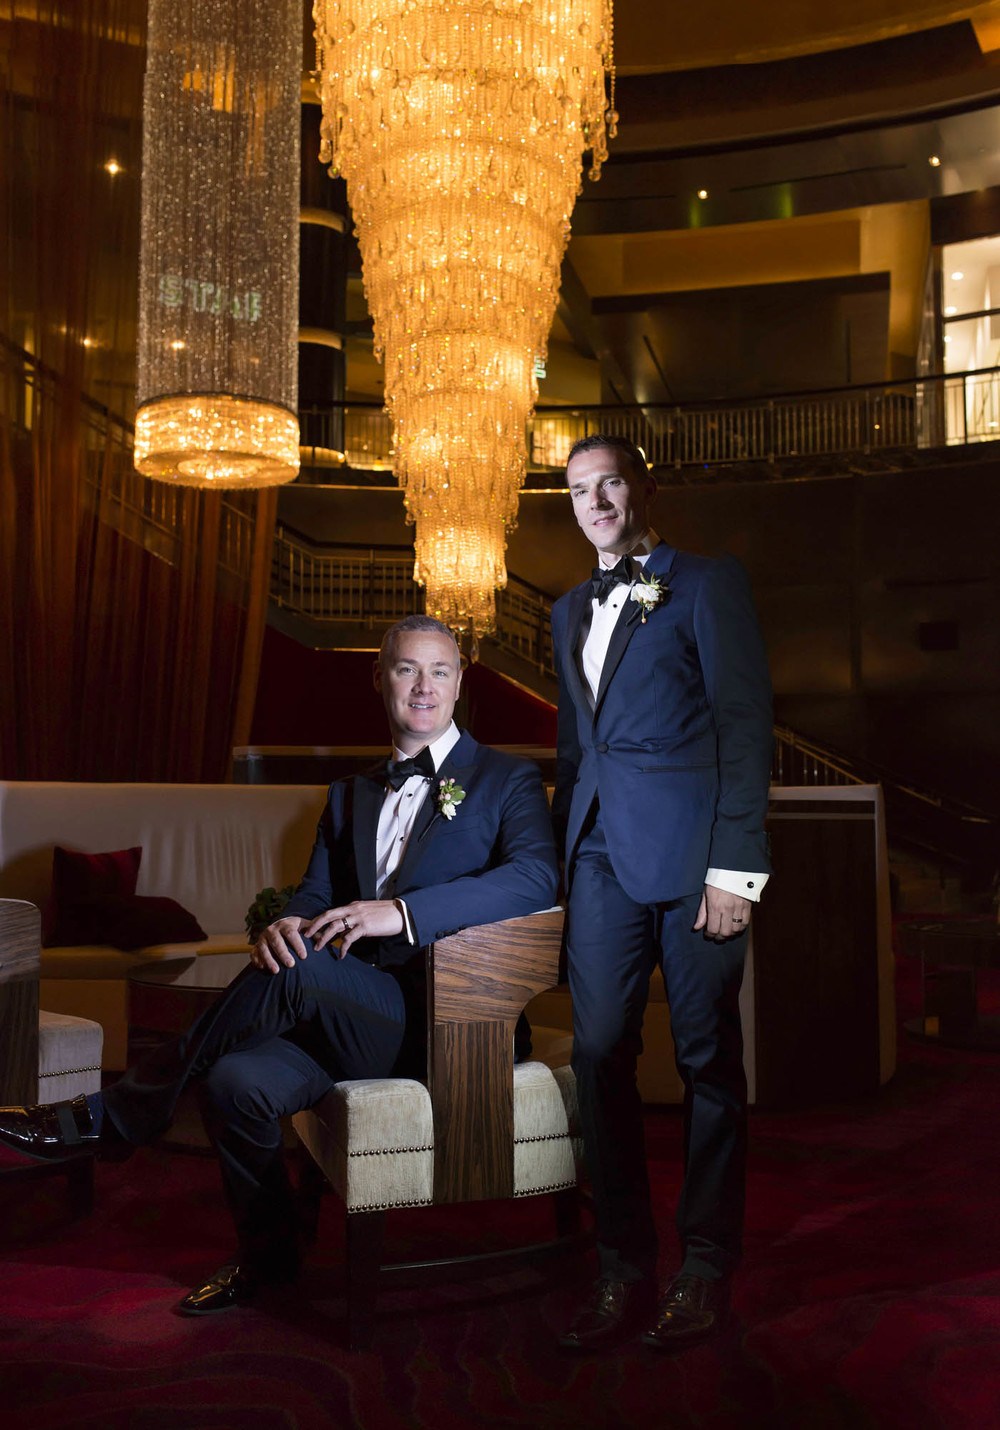 Grooms Fletcher and Greg celebrate their same-sex marriage at Red Rock Resort and Casino